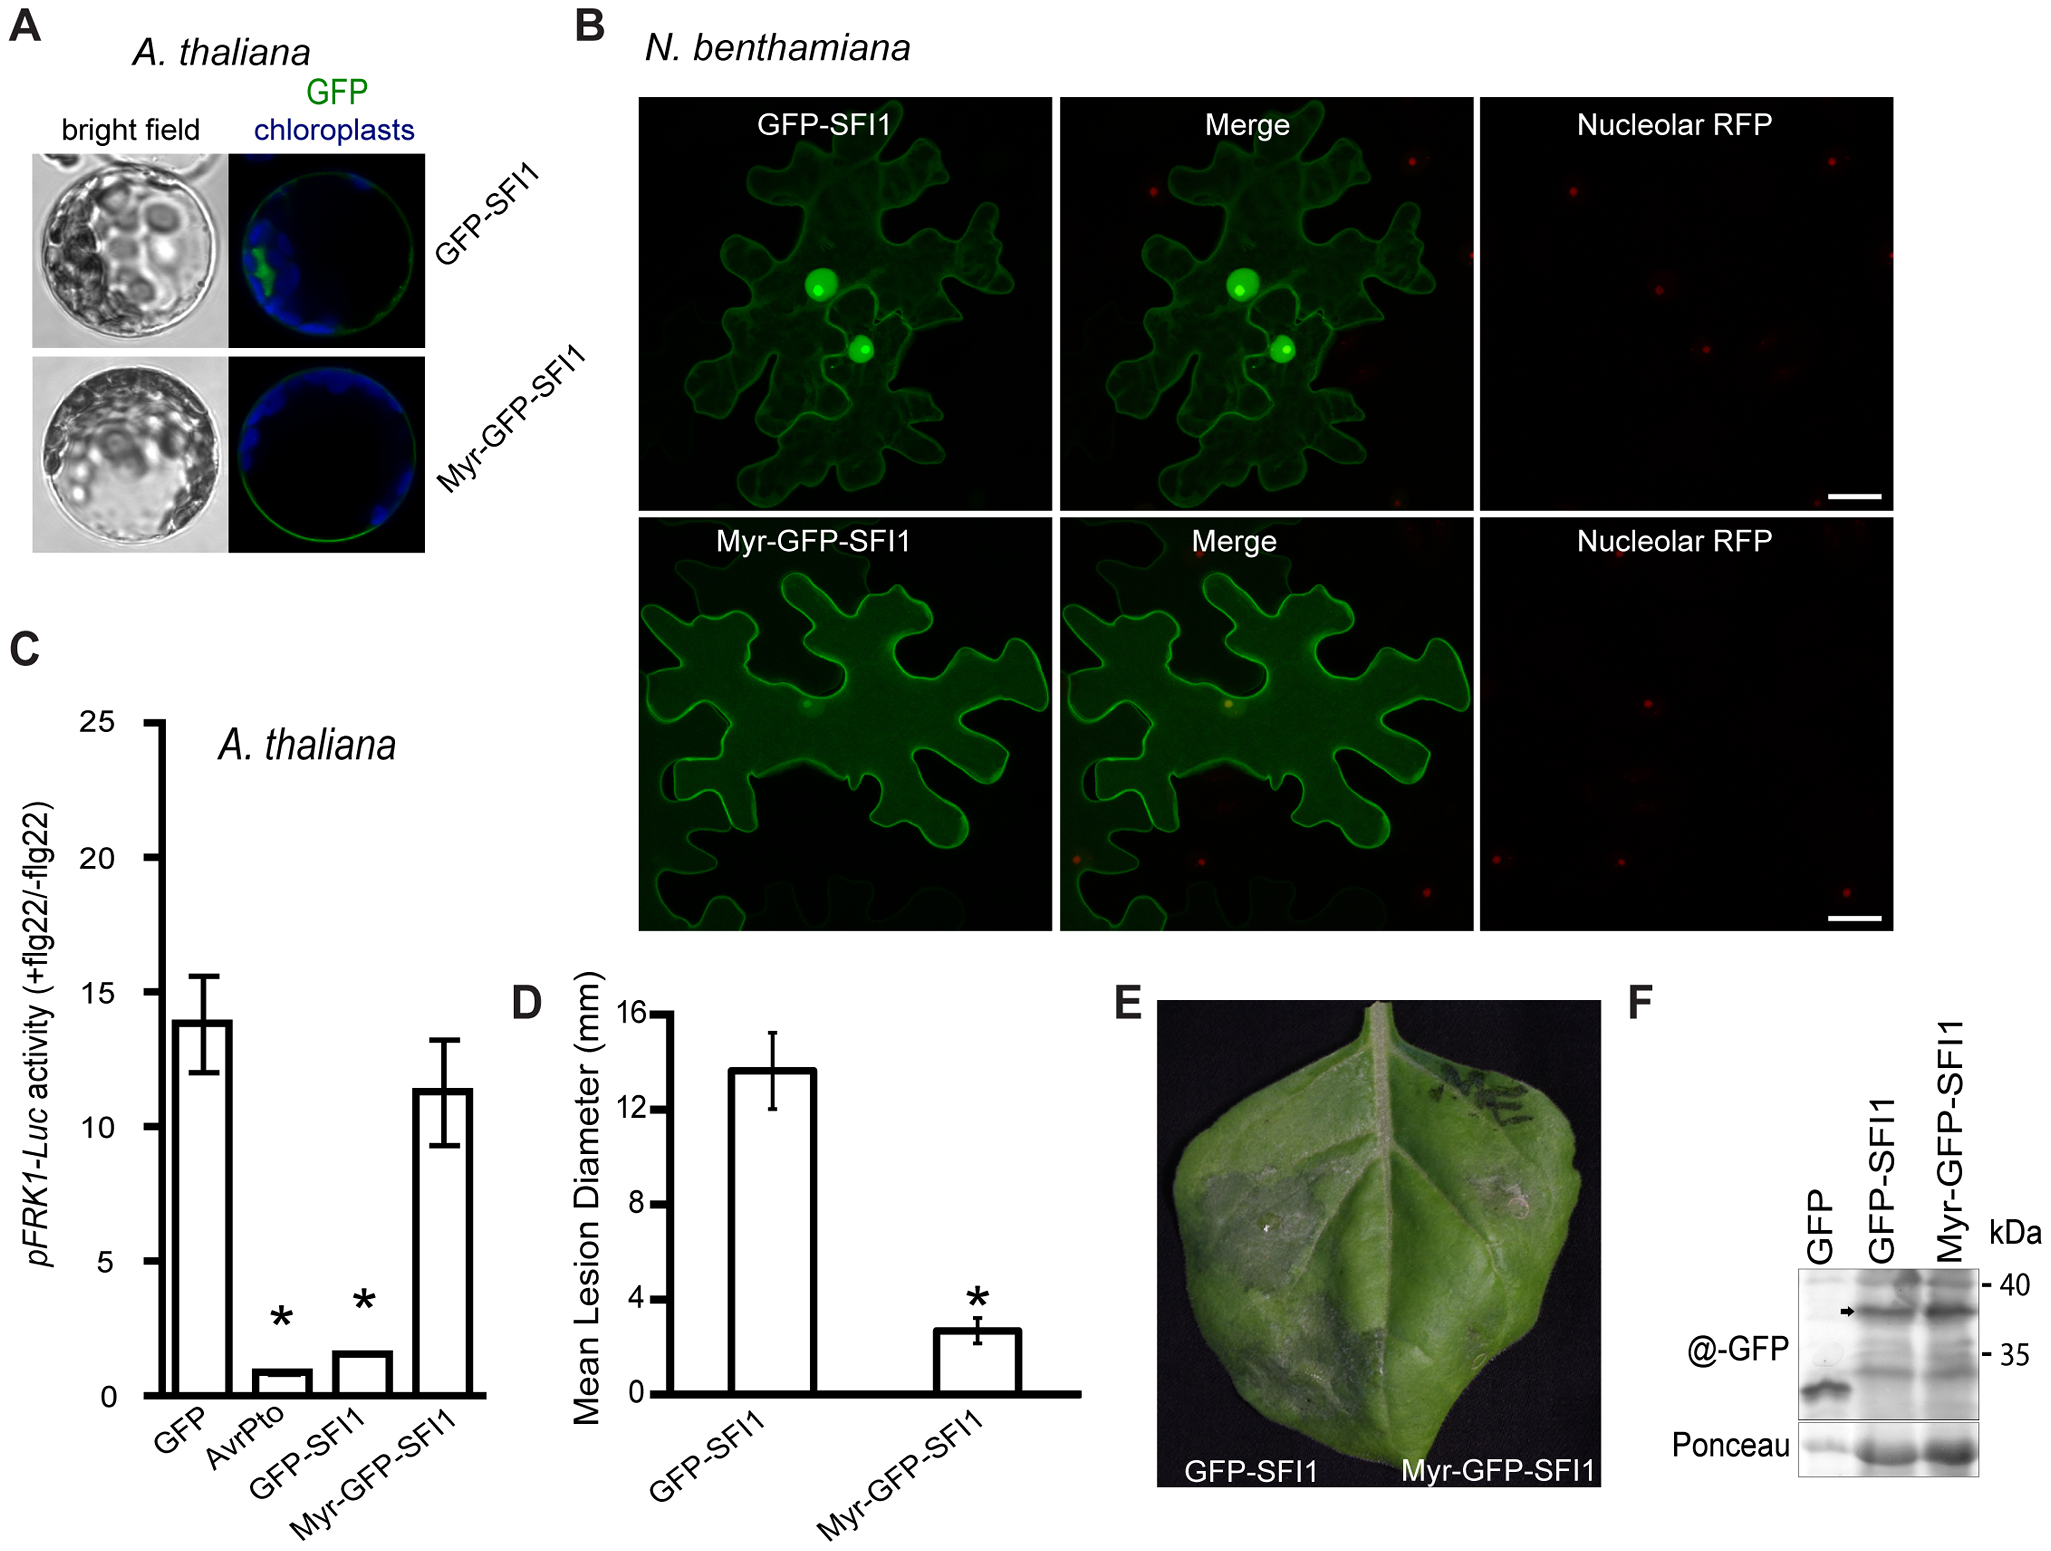 Importance of the nuclear localization of SFI1 for suppression of flg22-triggered <i>pFRK1-Luc</i> expression in <i>A. thaliana</i> and for <i>P. infestans</i> colonization in <i>N. benthamiana</i>.